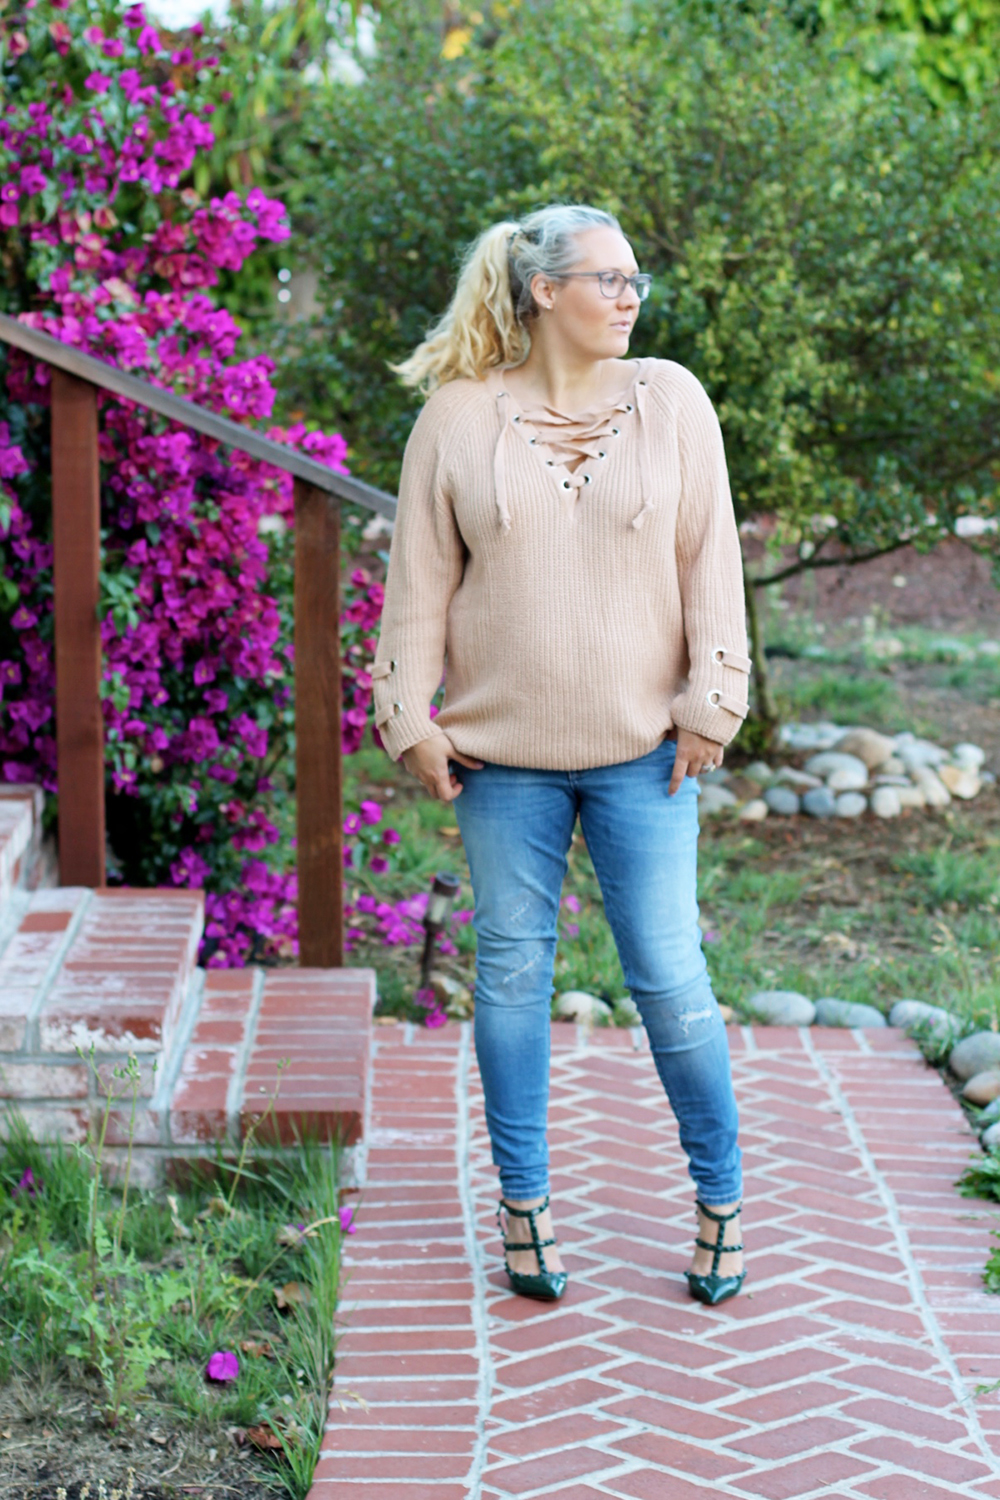 lace-up-sweater-chicwish-outfit-inspiration-mom-style-fashion-blogger-have-need-want-4